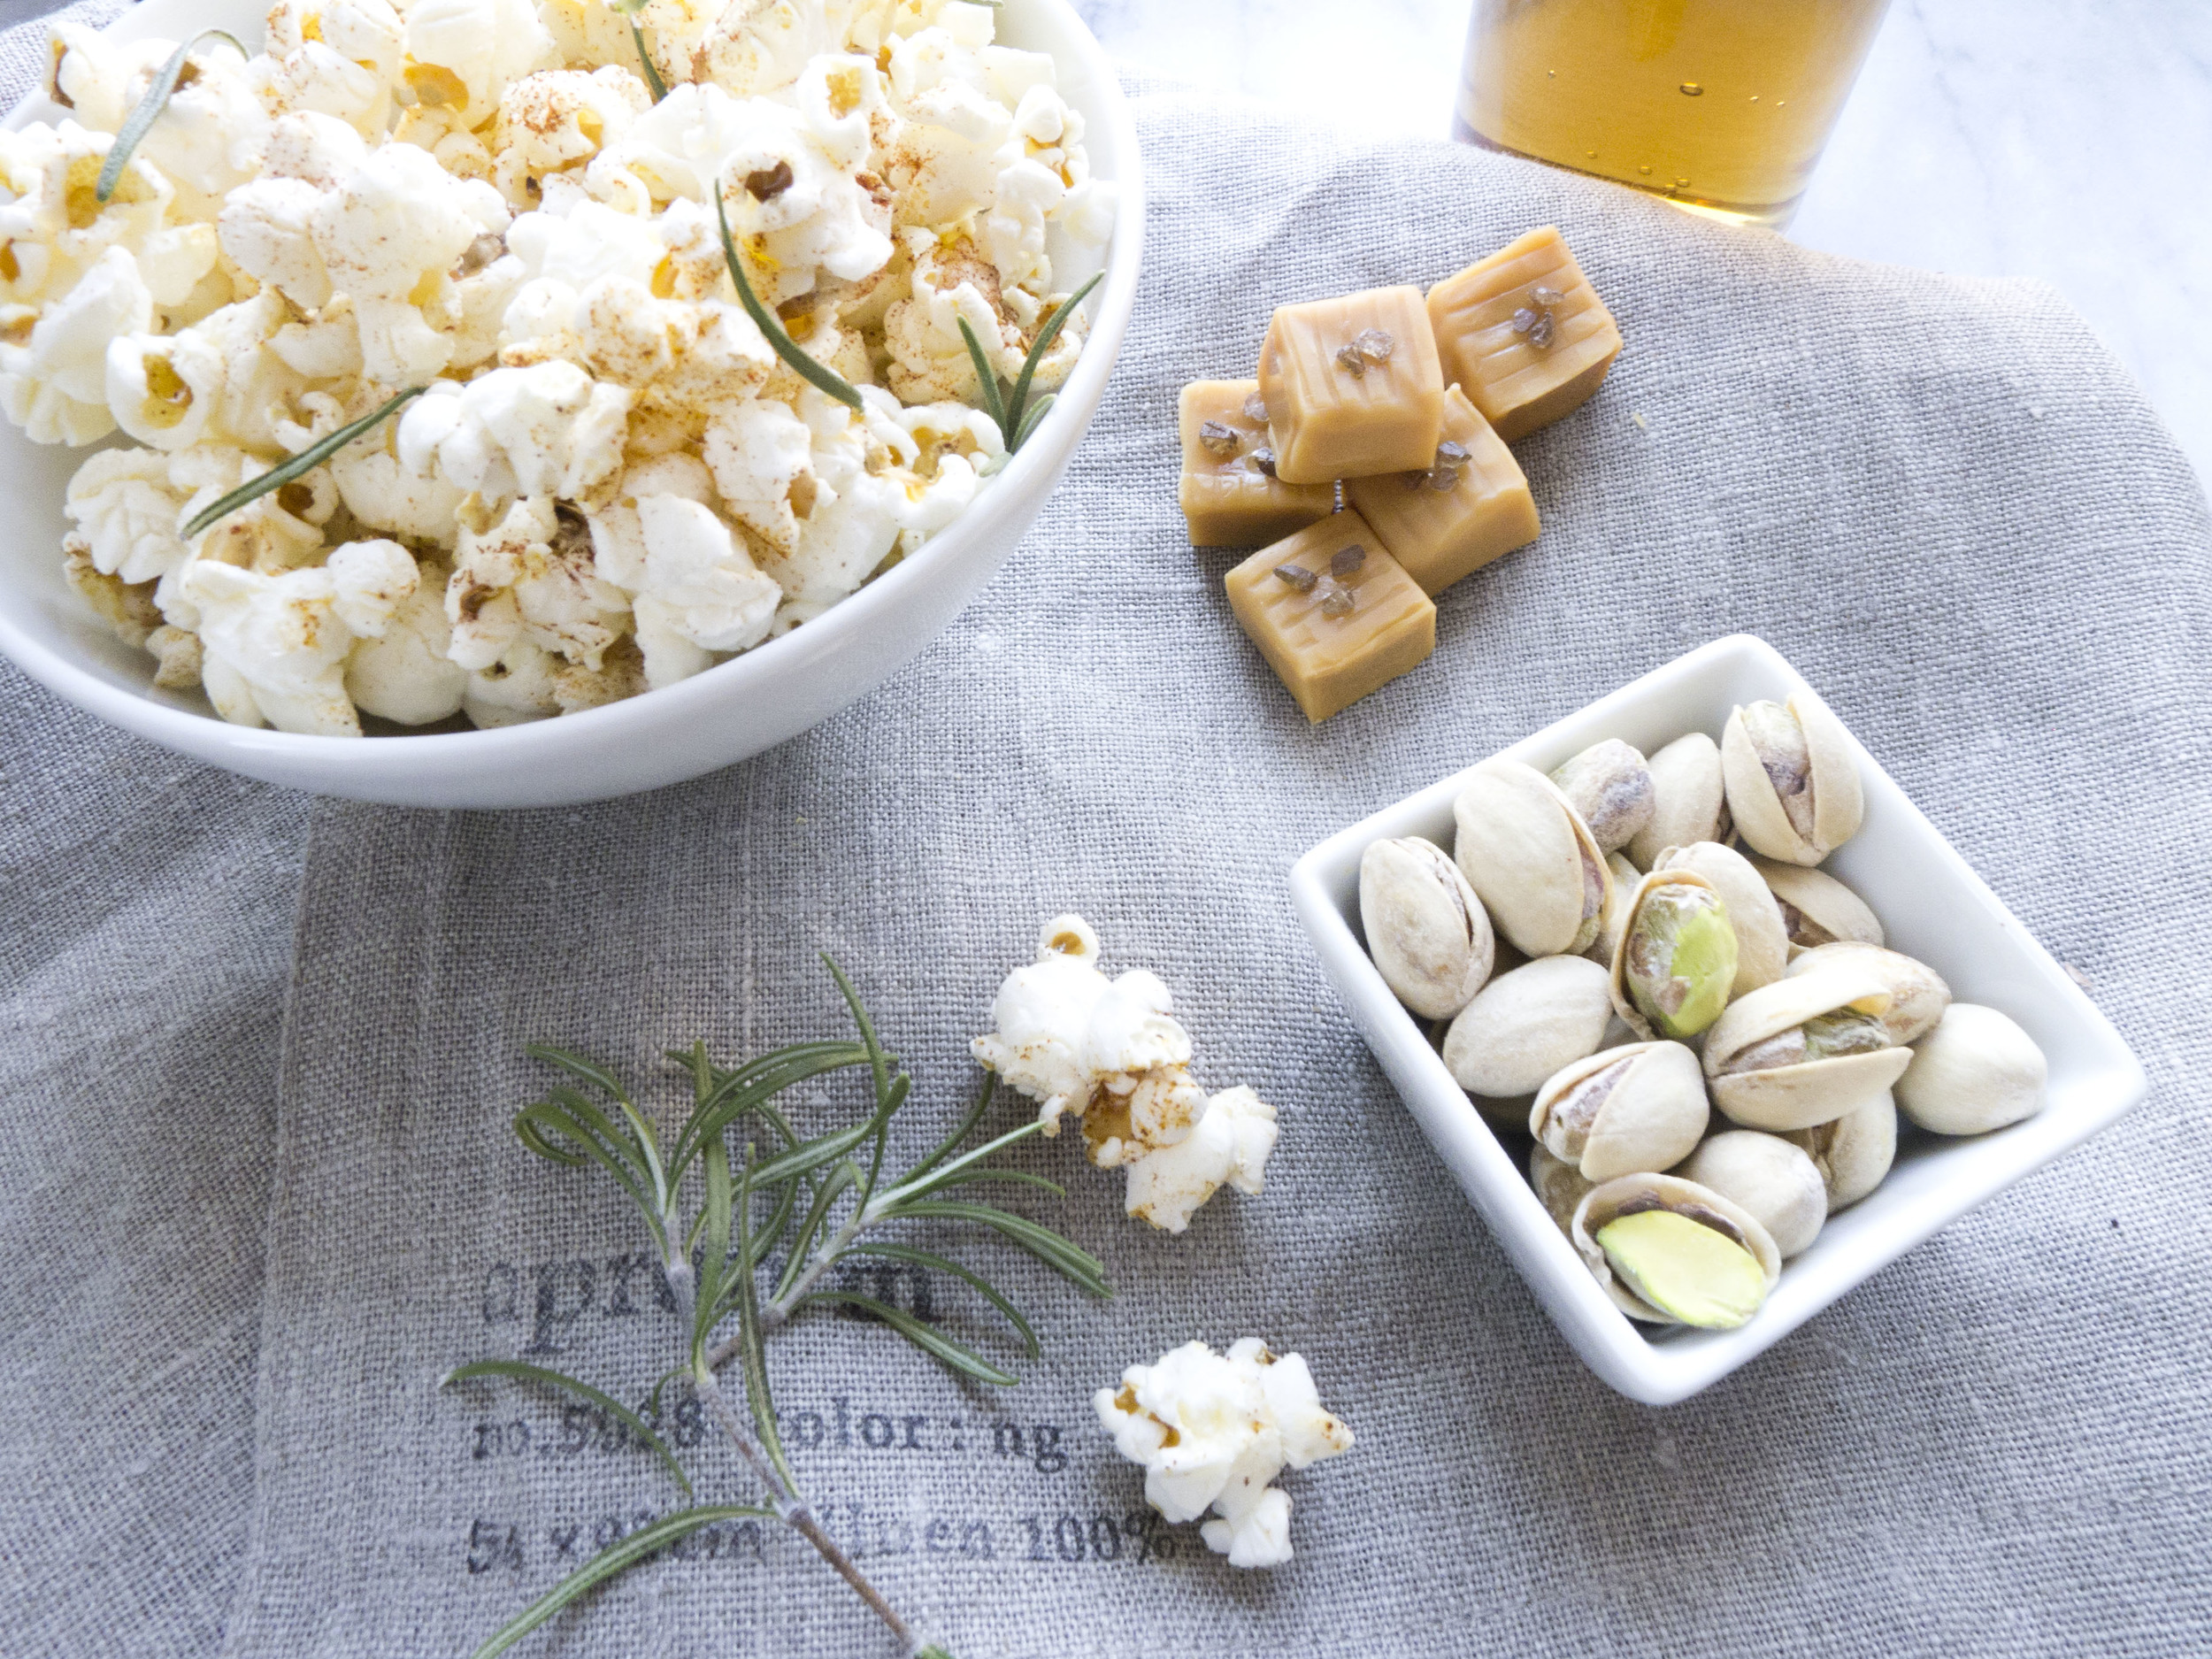 smoked salt caramels, popcorn with chipotle and rosemary, in shell pistachio, cream soda